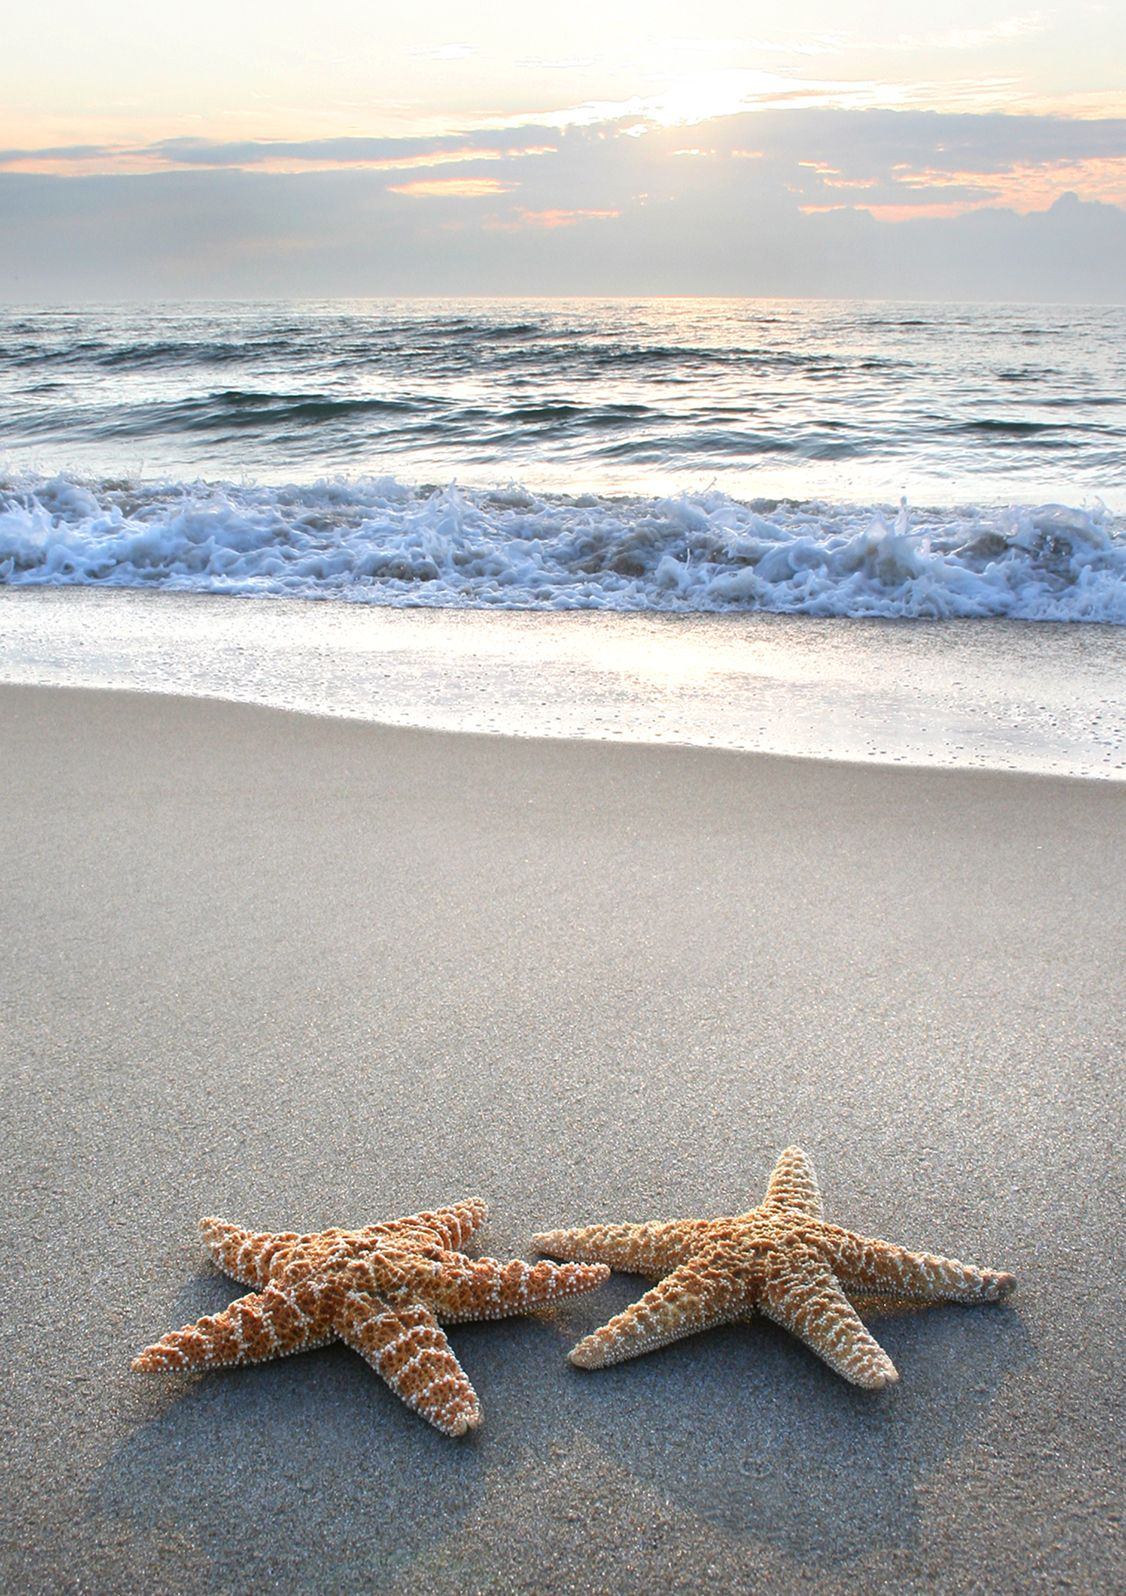 ~Starfish~ Every life form seems to reach out to its own ...